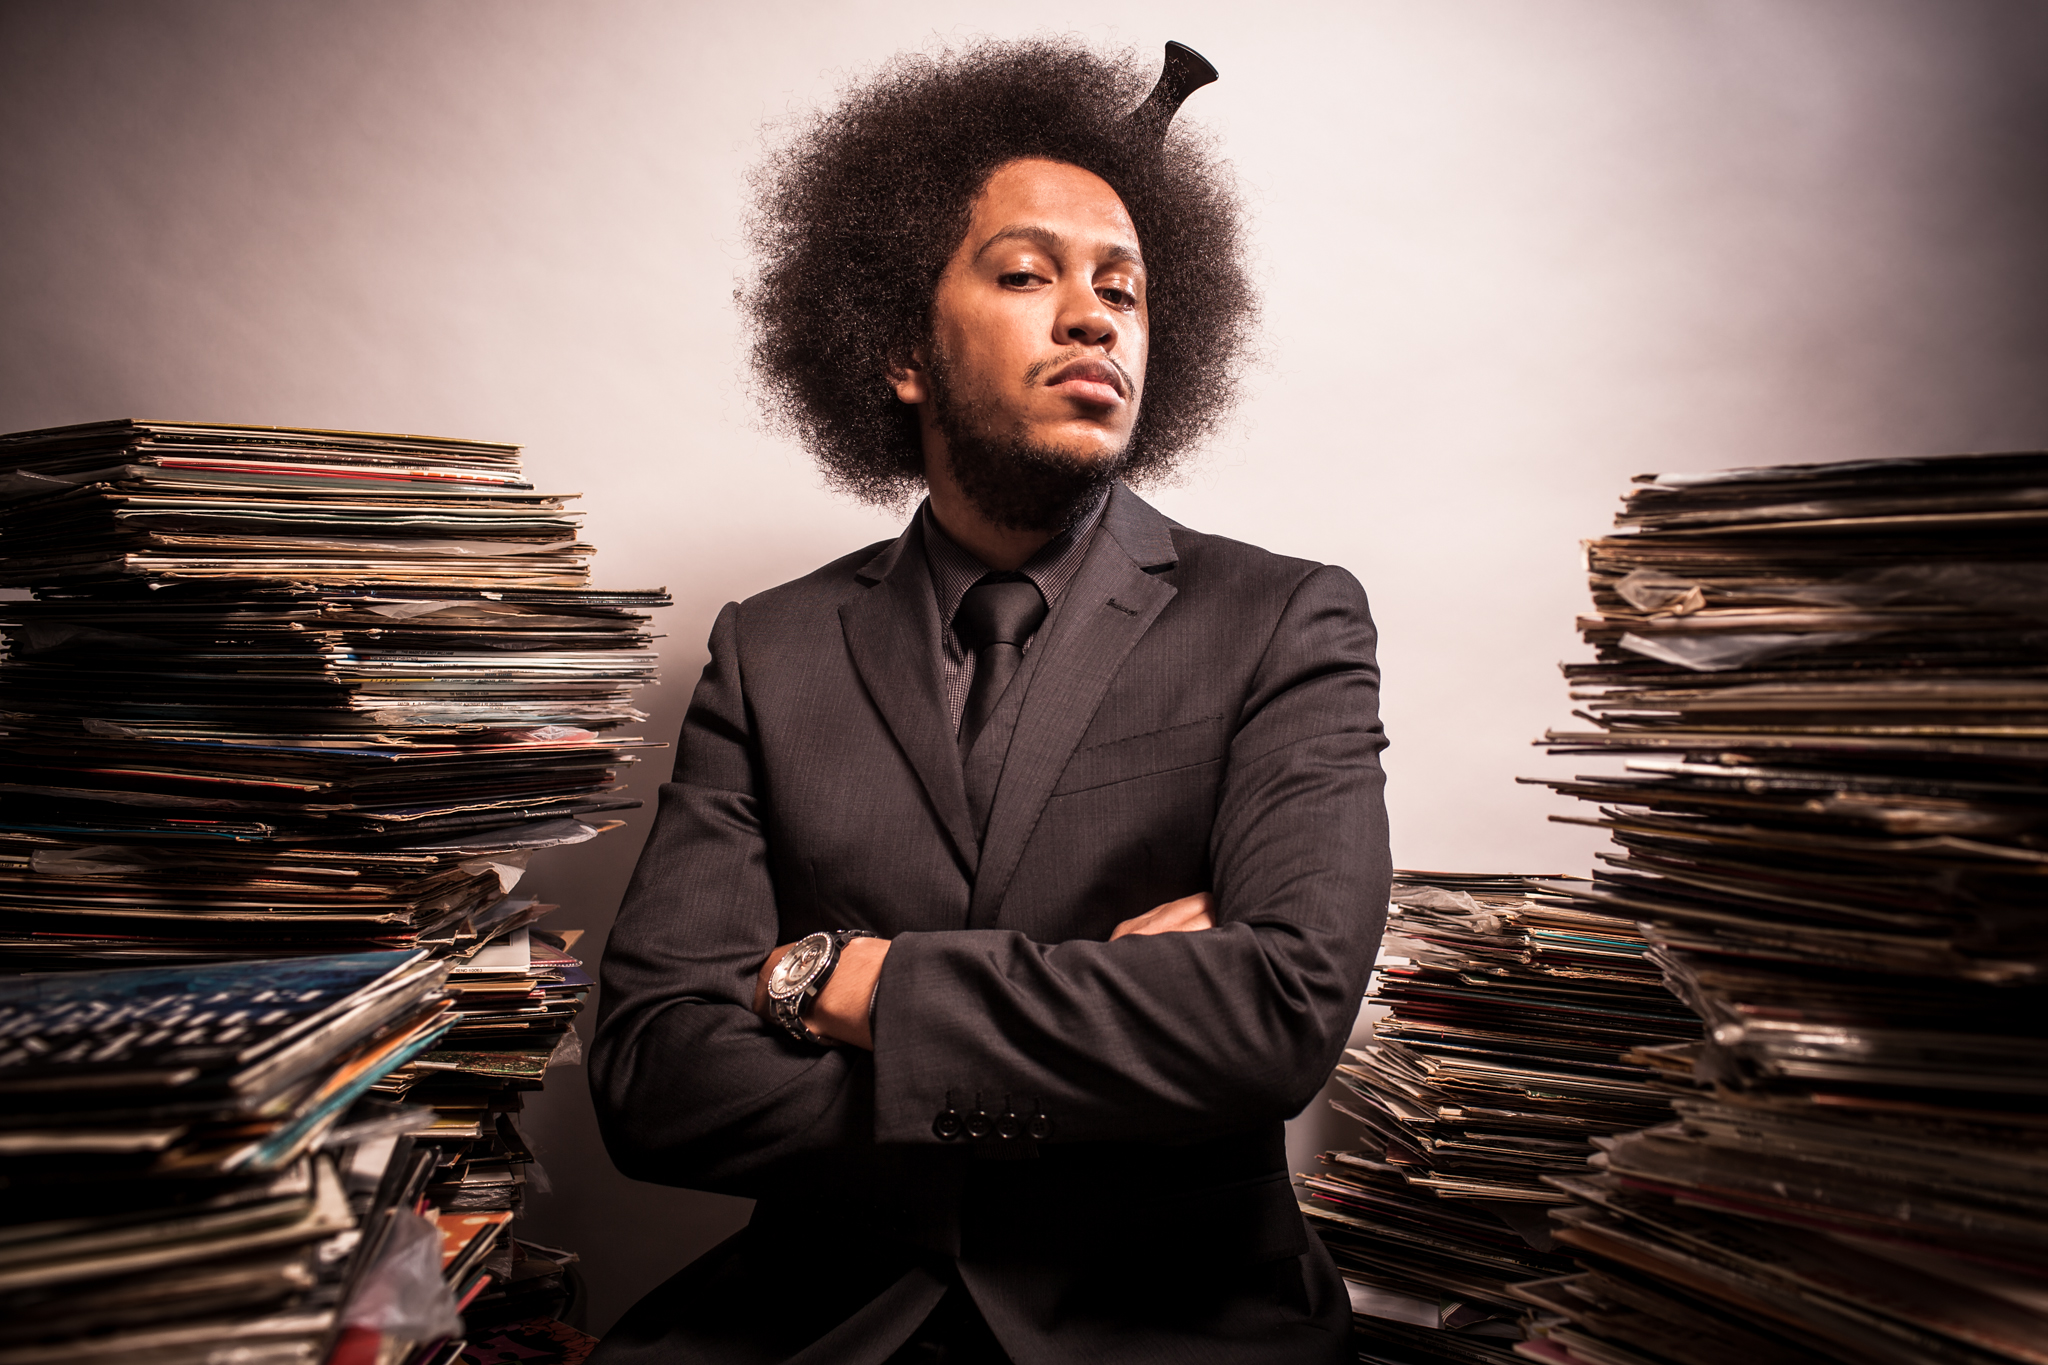 I ask Seb to channel Questlove. No photo-shoot can go poorly if Questlove is involved. #industrysecrets